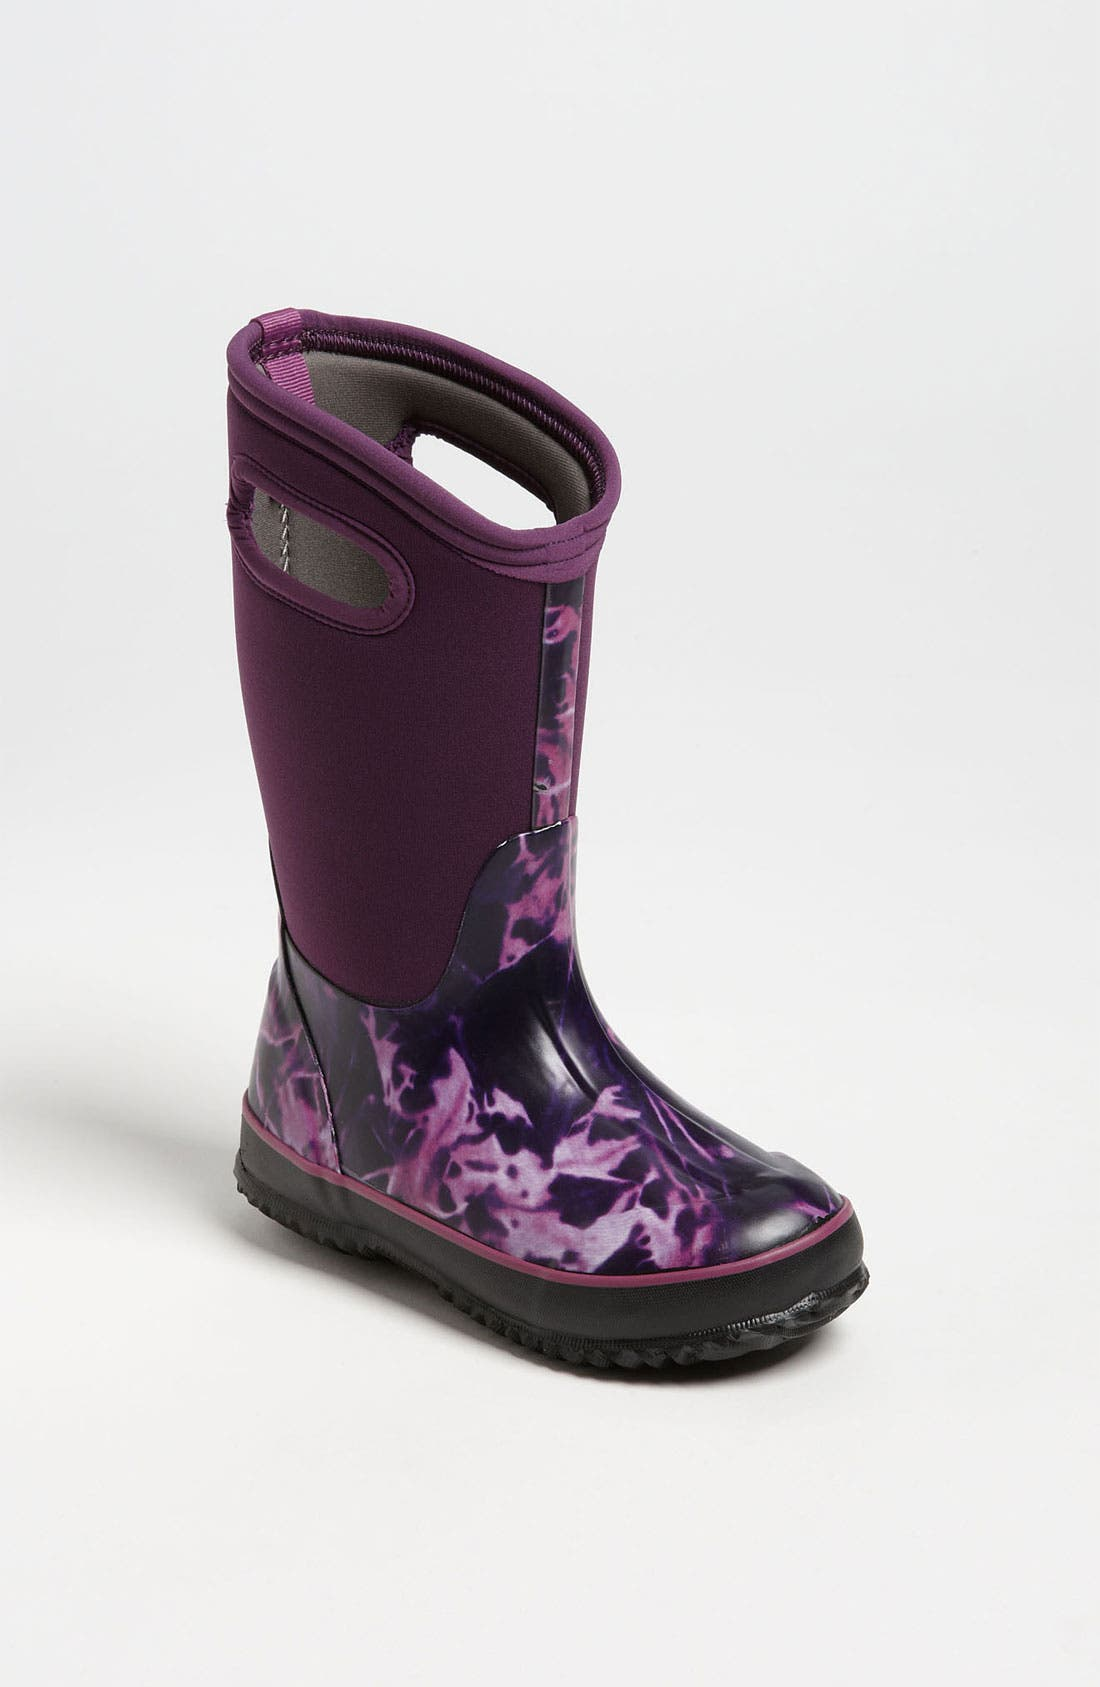 Main Image - Bogs 'Classic High - Batik' Waterproof Boot (Toddler, Little Kid & Big Kid)